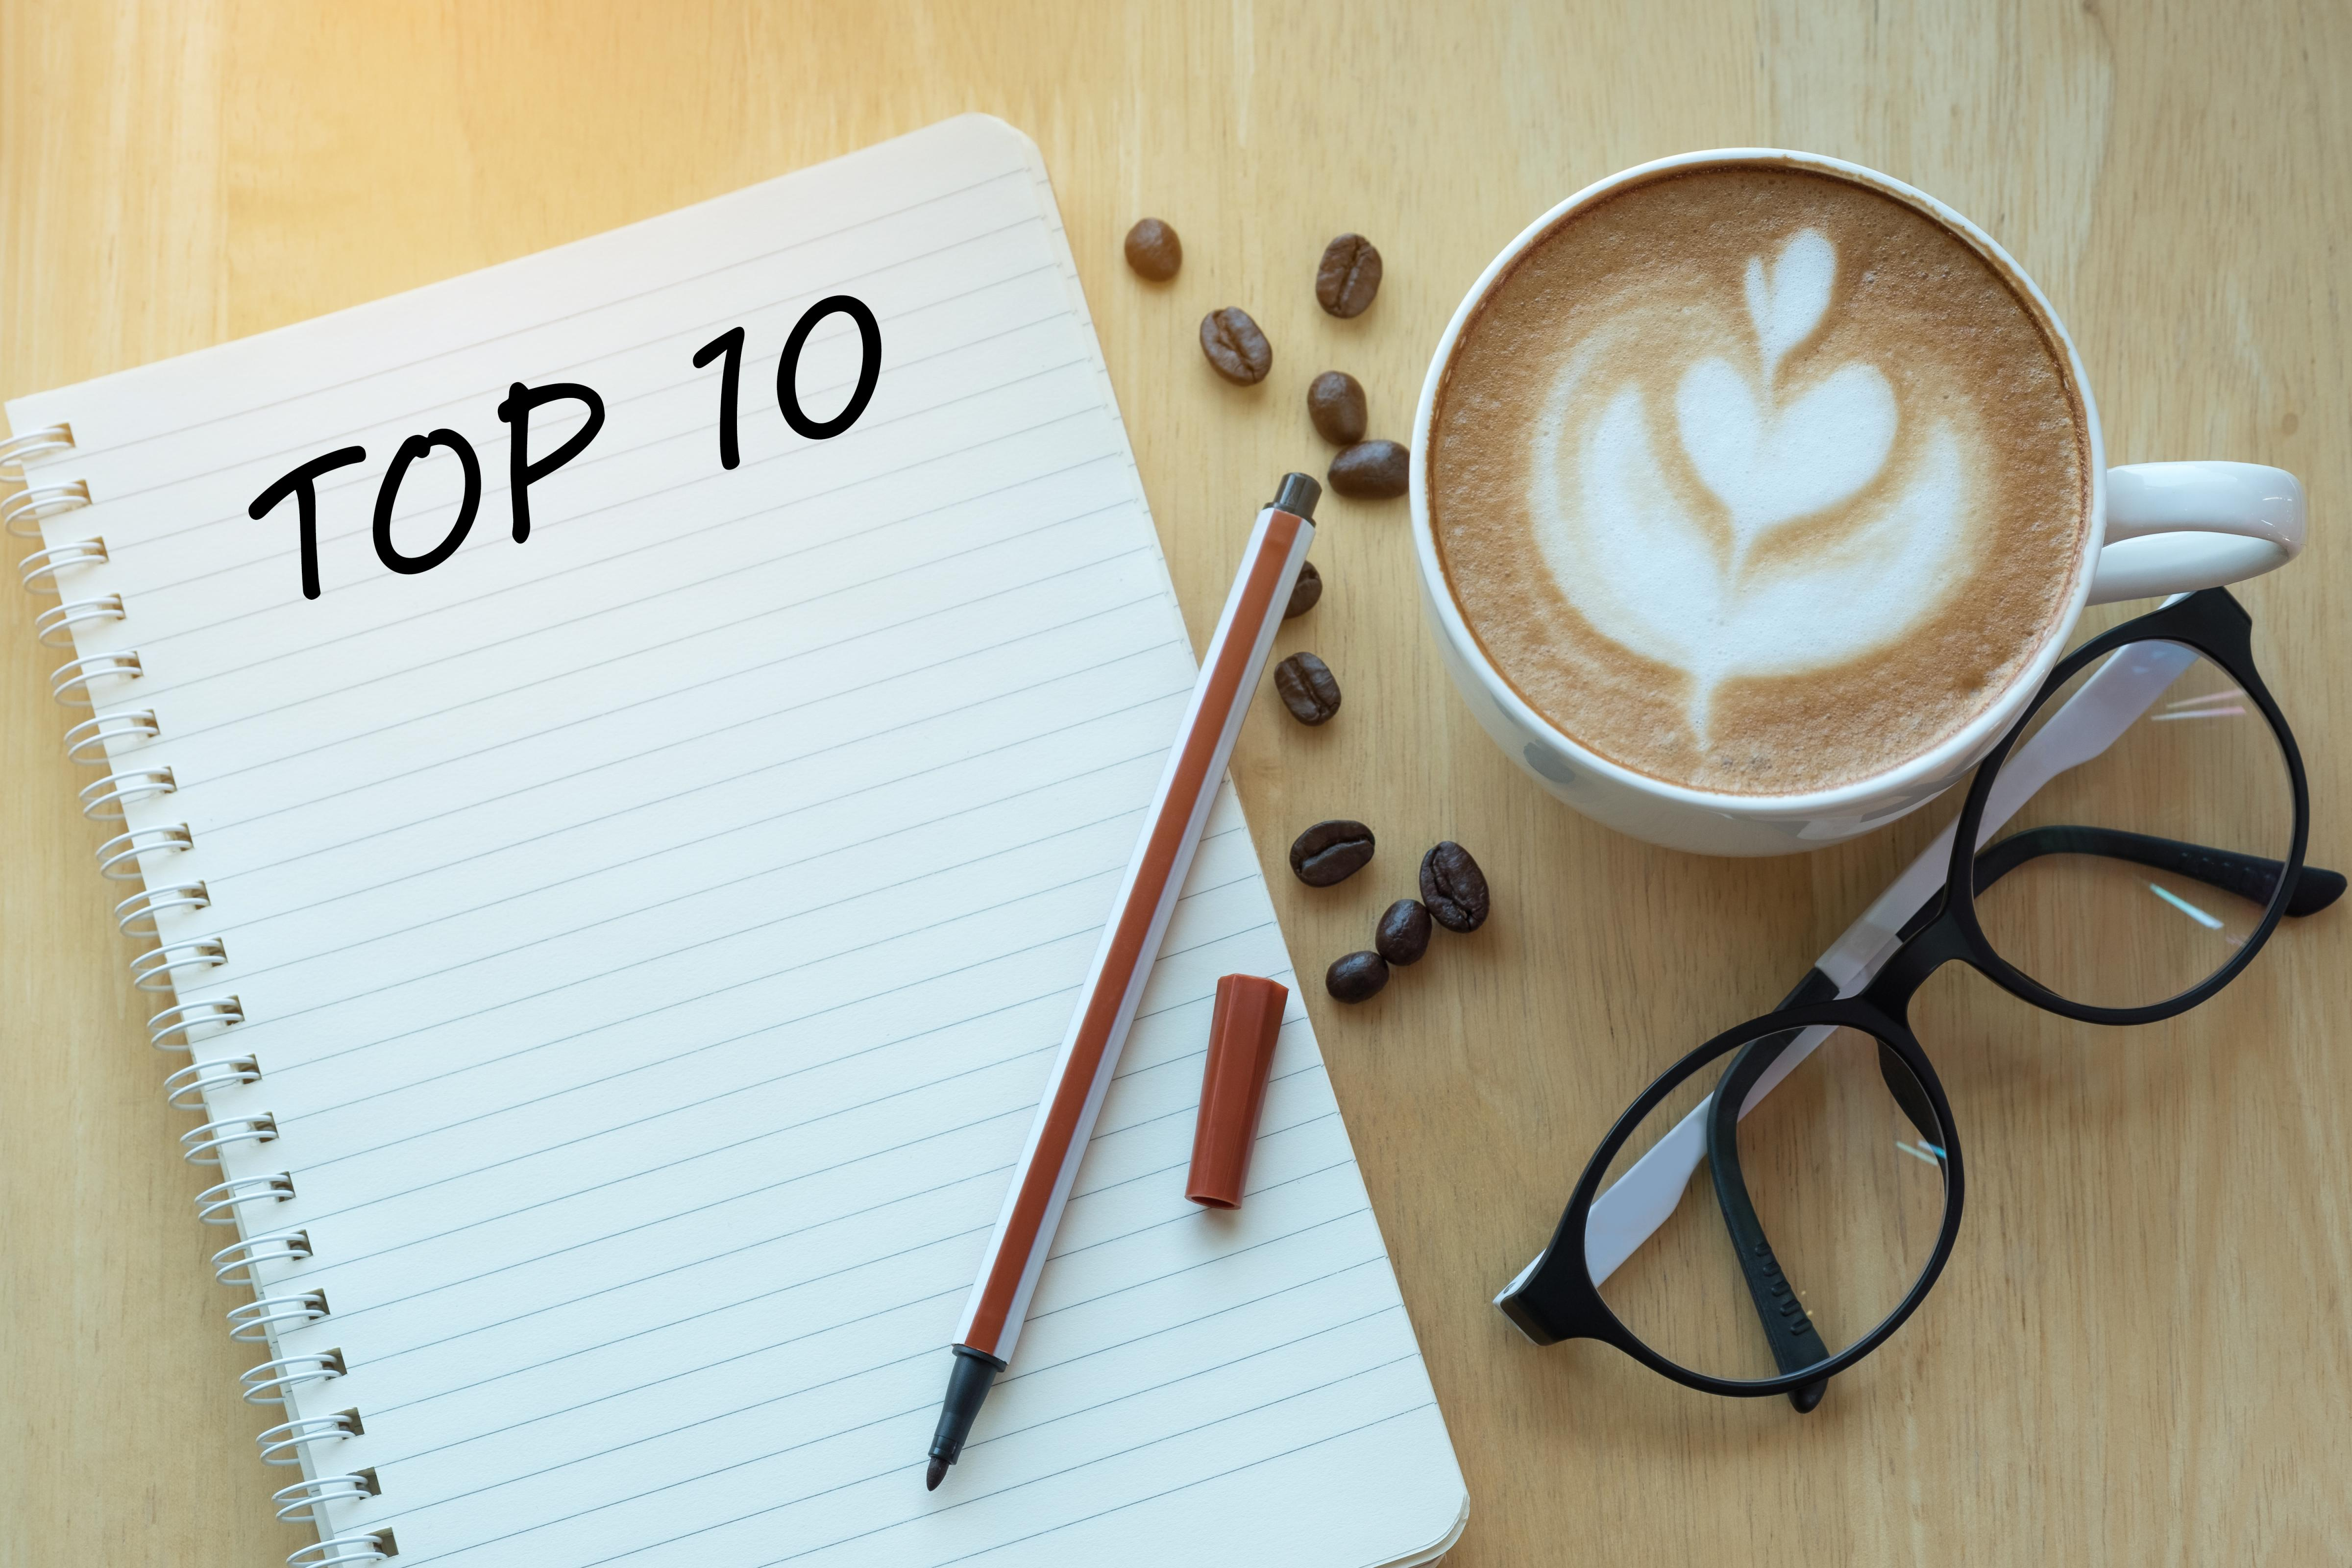 10 Tips to Help You Keep the Compensation and Pension Exam (C&P exam) in Perspective